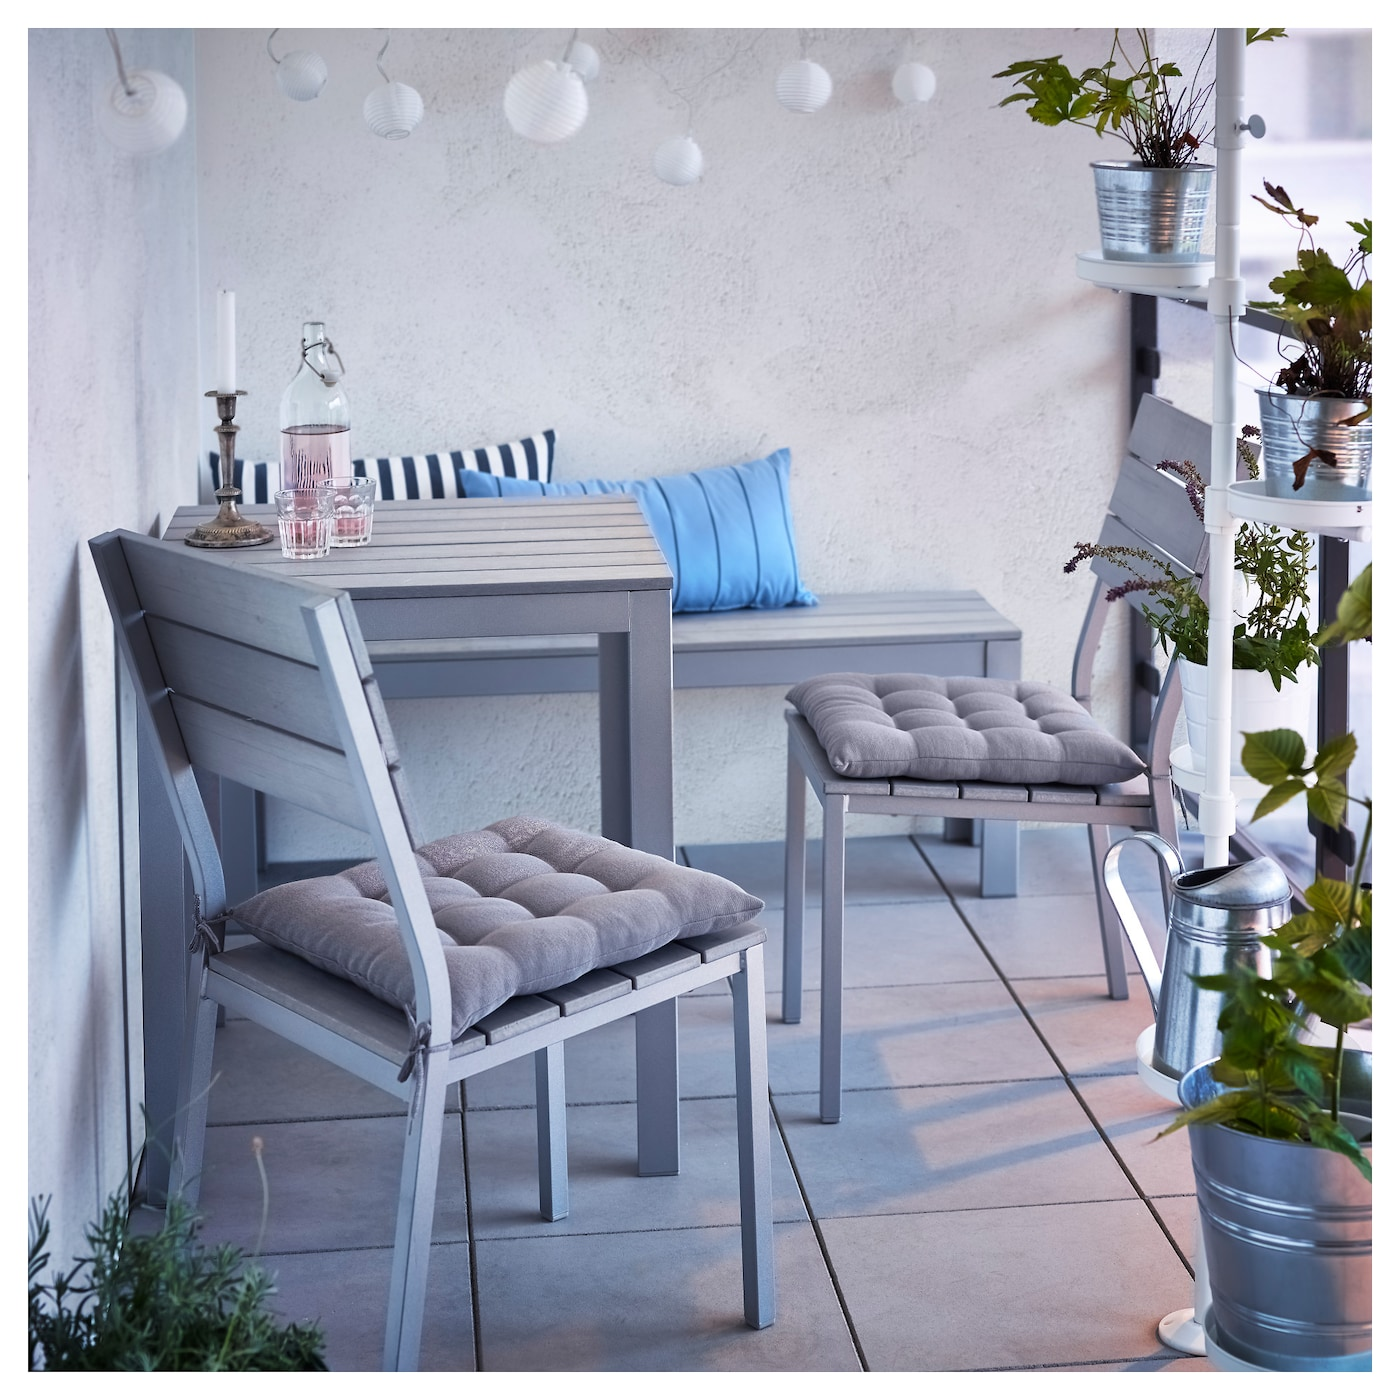 Superieur IKEA FALSTER Table, Outdoor The Polystyrene Slats Are Weather Resistant And  Easy To Care